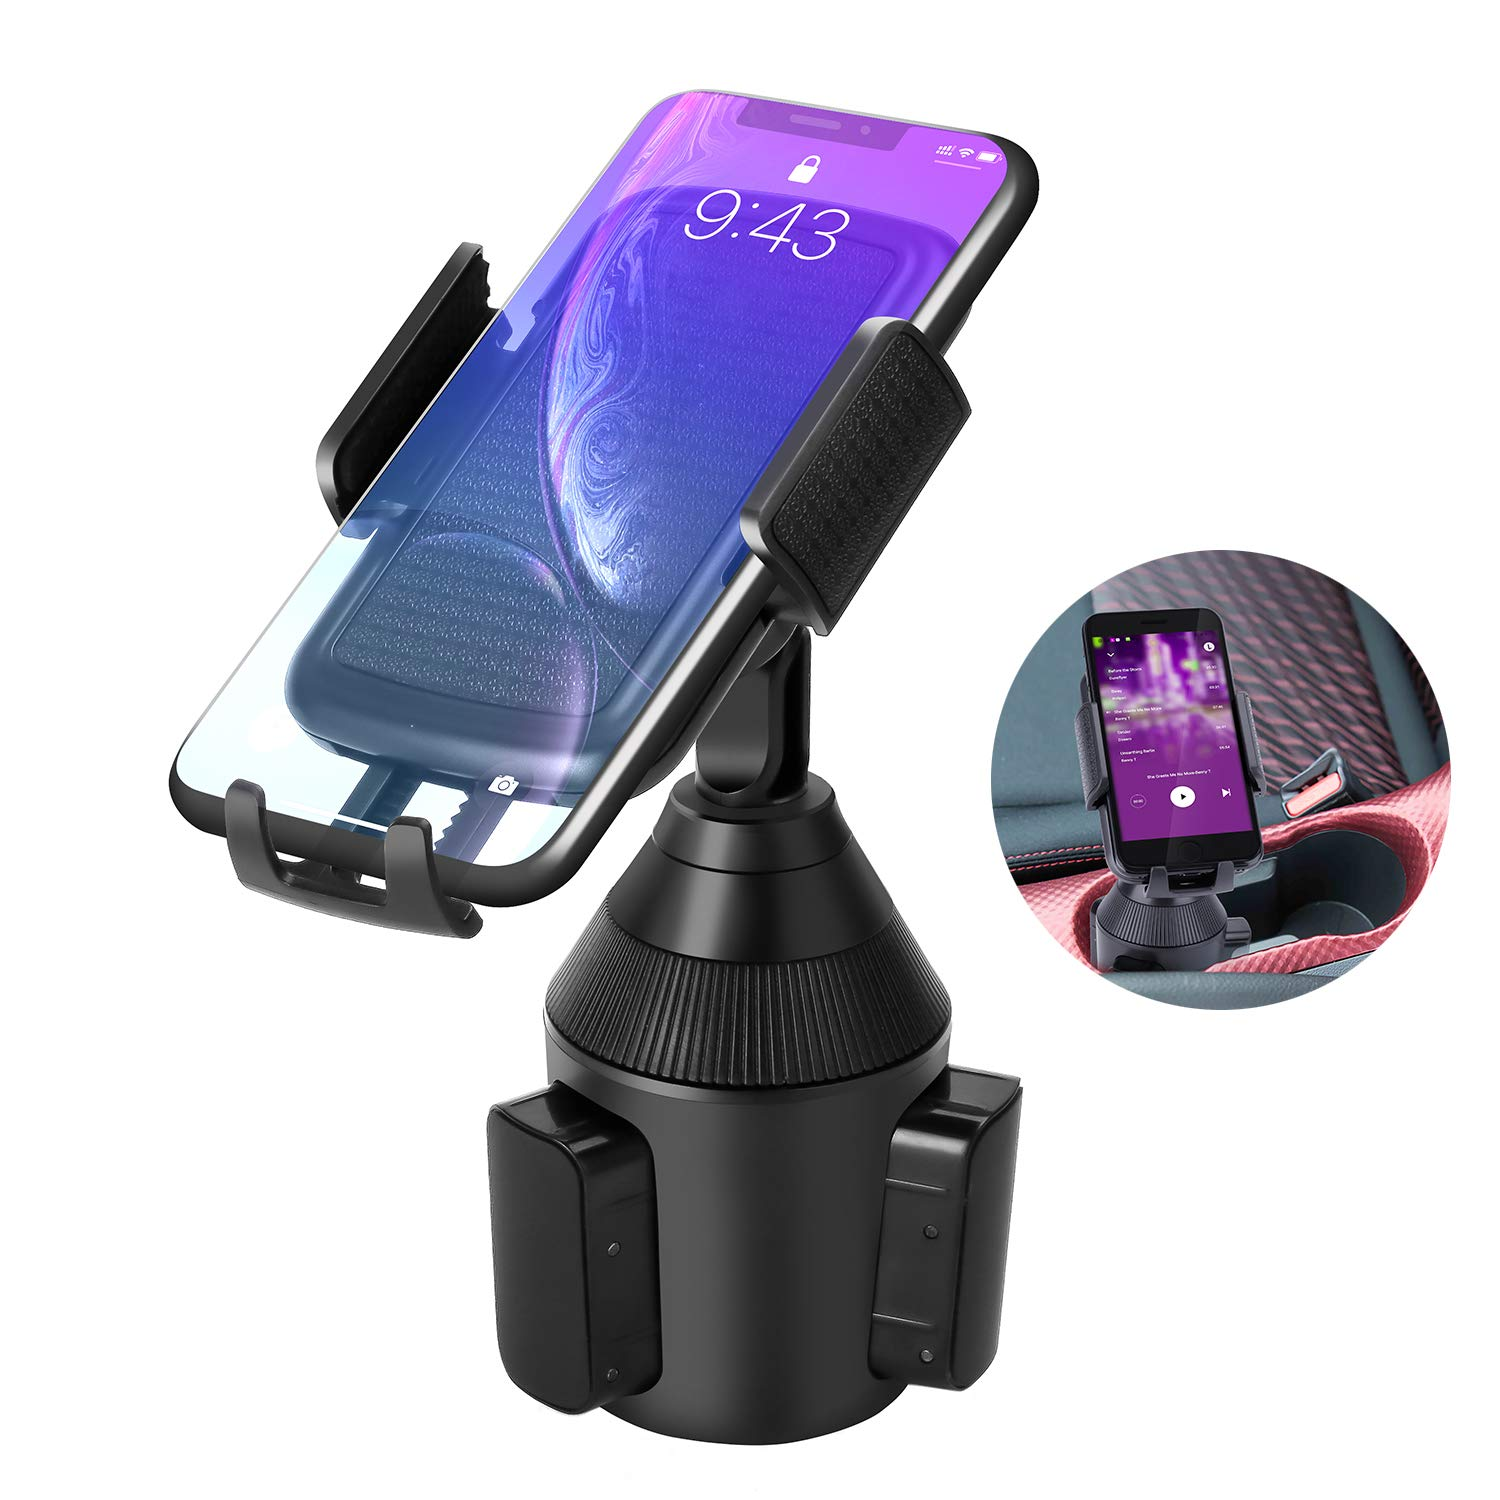 Car Cup Holder Phone Mount,Universal Smart Adjustable Automobile Cell Phone Mount for iPhone Xs/Max/X/XR/8/7/6 Plus Samsung Galaxy S10/S9/ S8 Note 9 Nexus Sony、HTC、Huawei、LG and All Smartphones by LEXSO